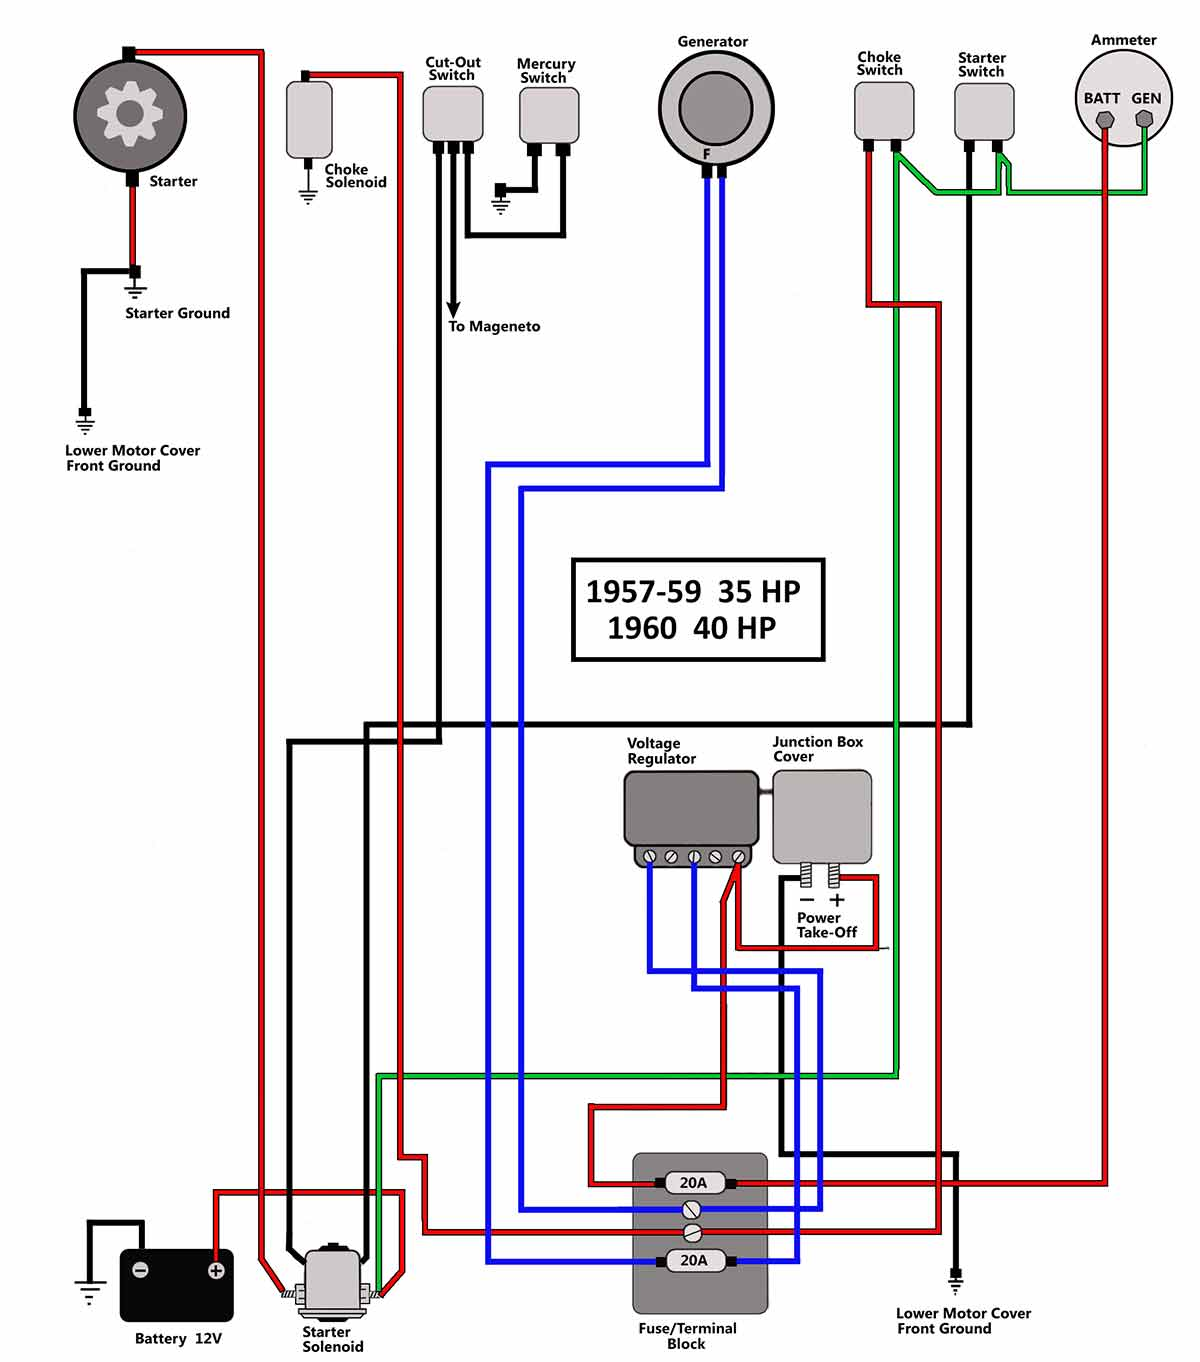 1957 60_35 40 evinrude vro wiring diagram evinrude wiring diagram outboards 40 hp mercury wiring harness schematic at nearapp.co